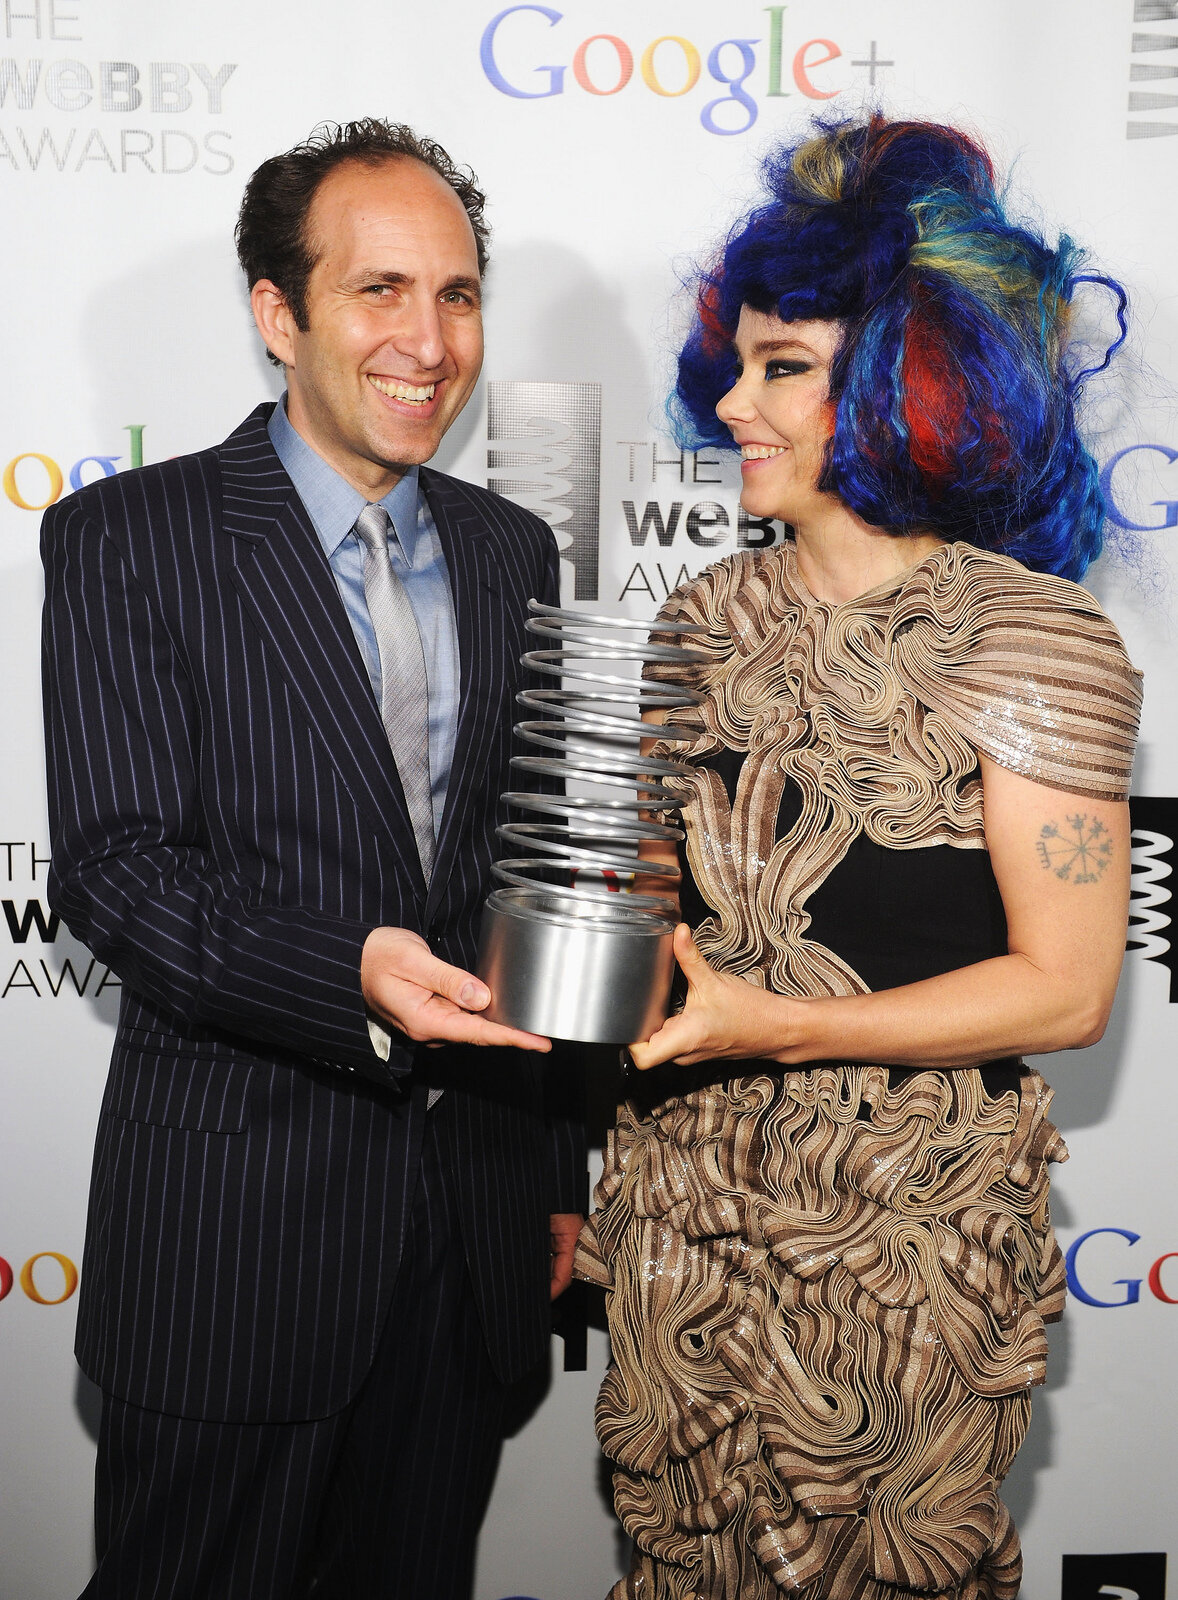 Scott Snibbe presenting Björk with Webby Award for Biophilia, 2012.